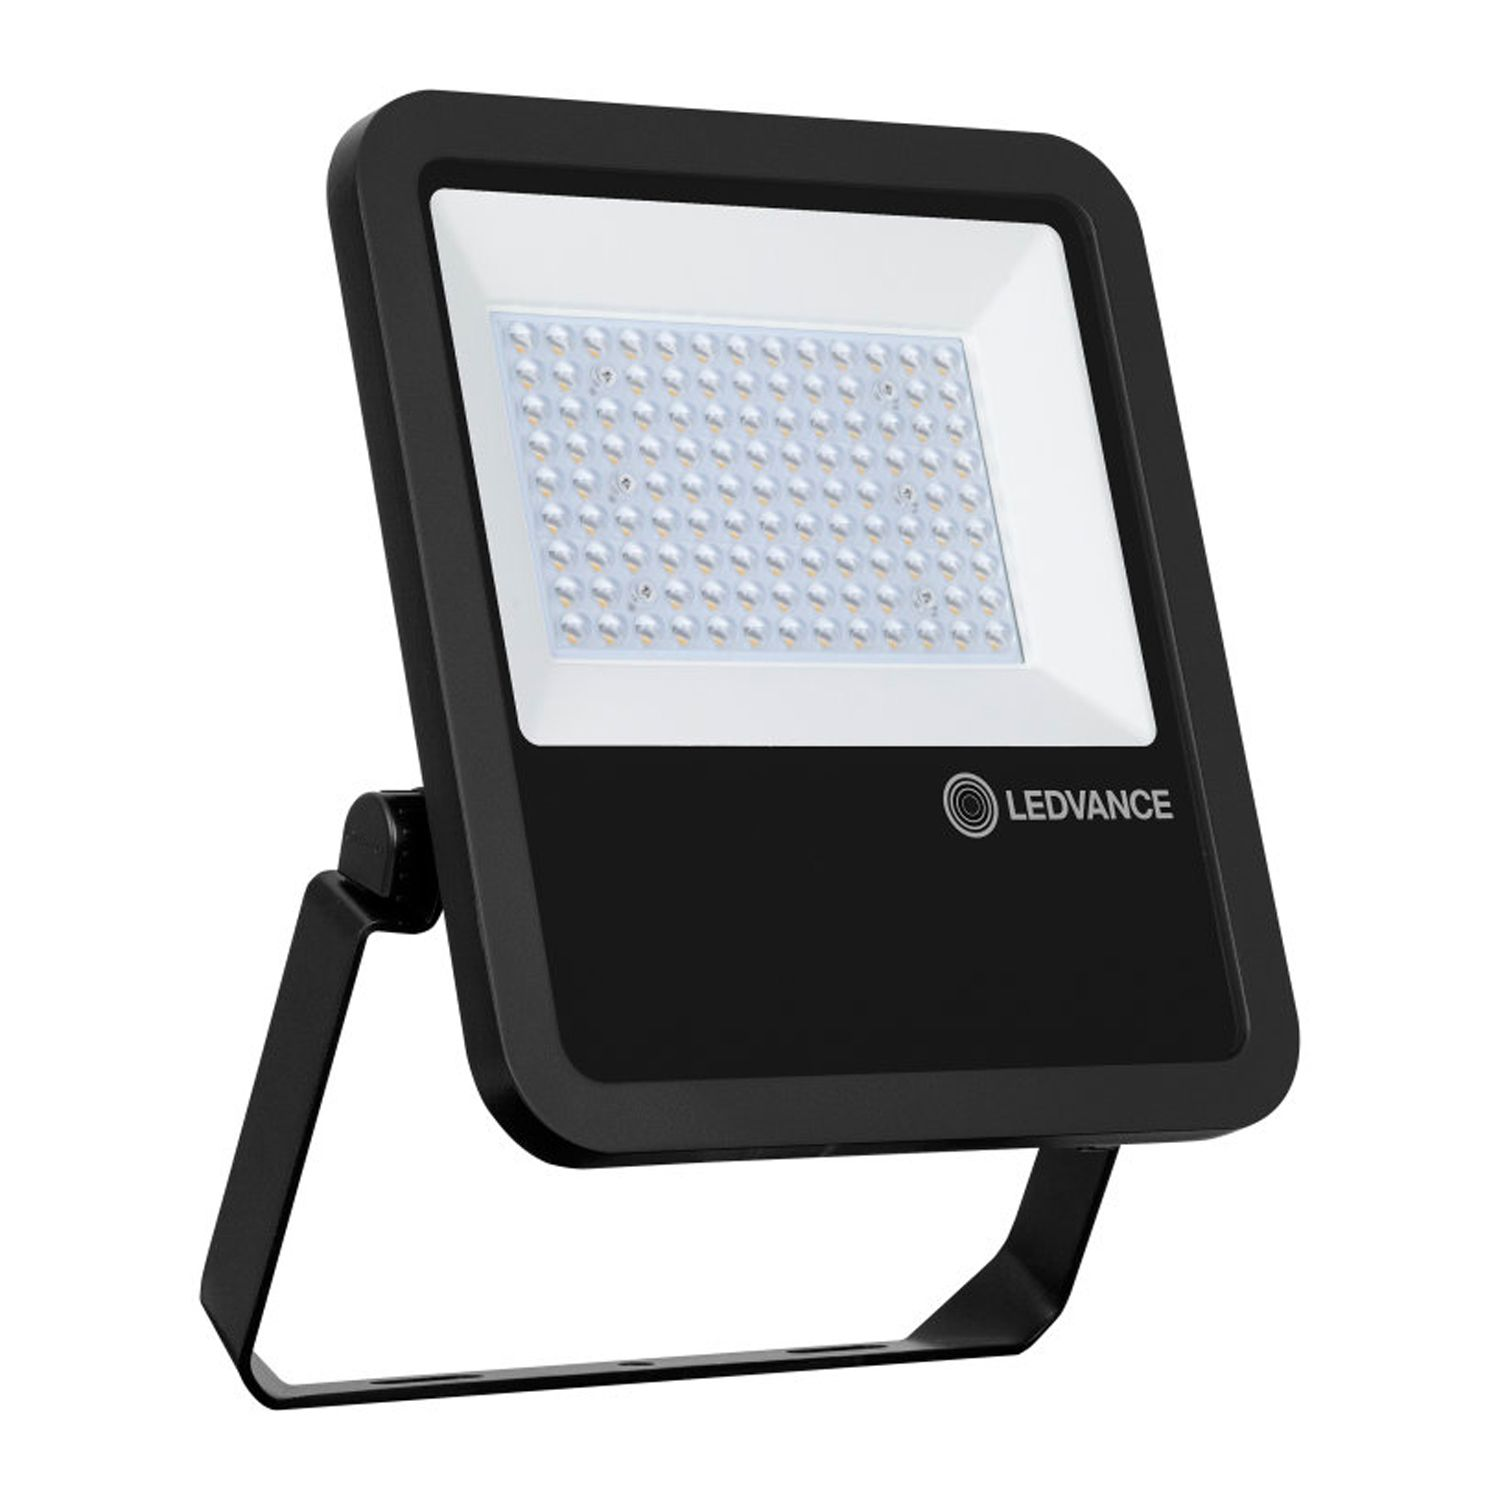 Ledvance LED Floodlight Area 72W 3000K 9200lm IP65 | Warm White